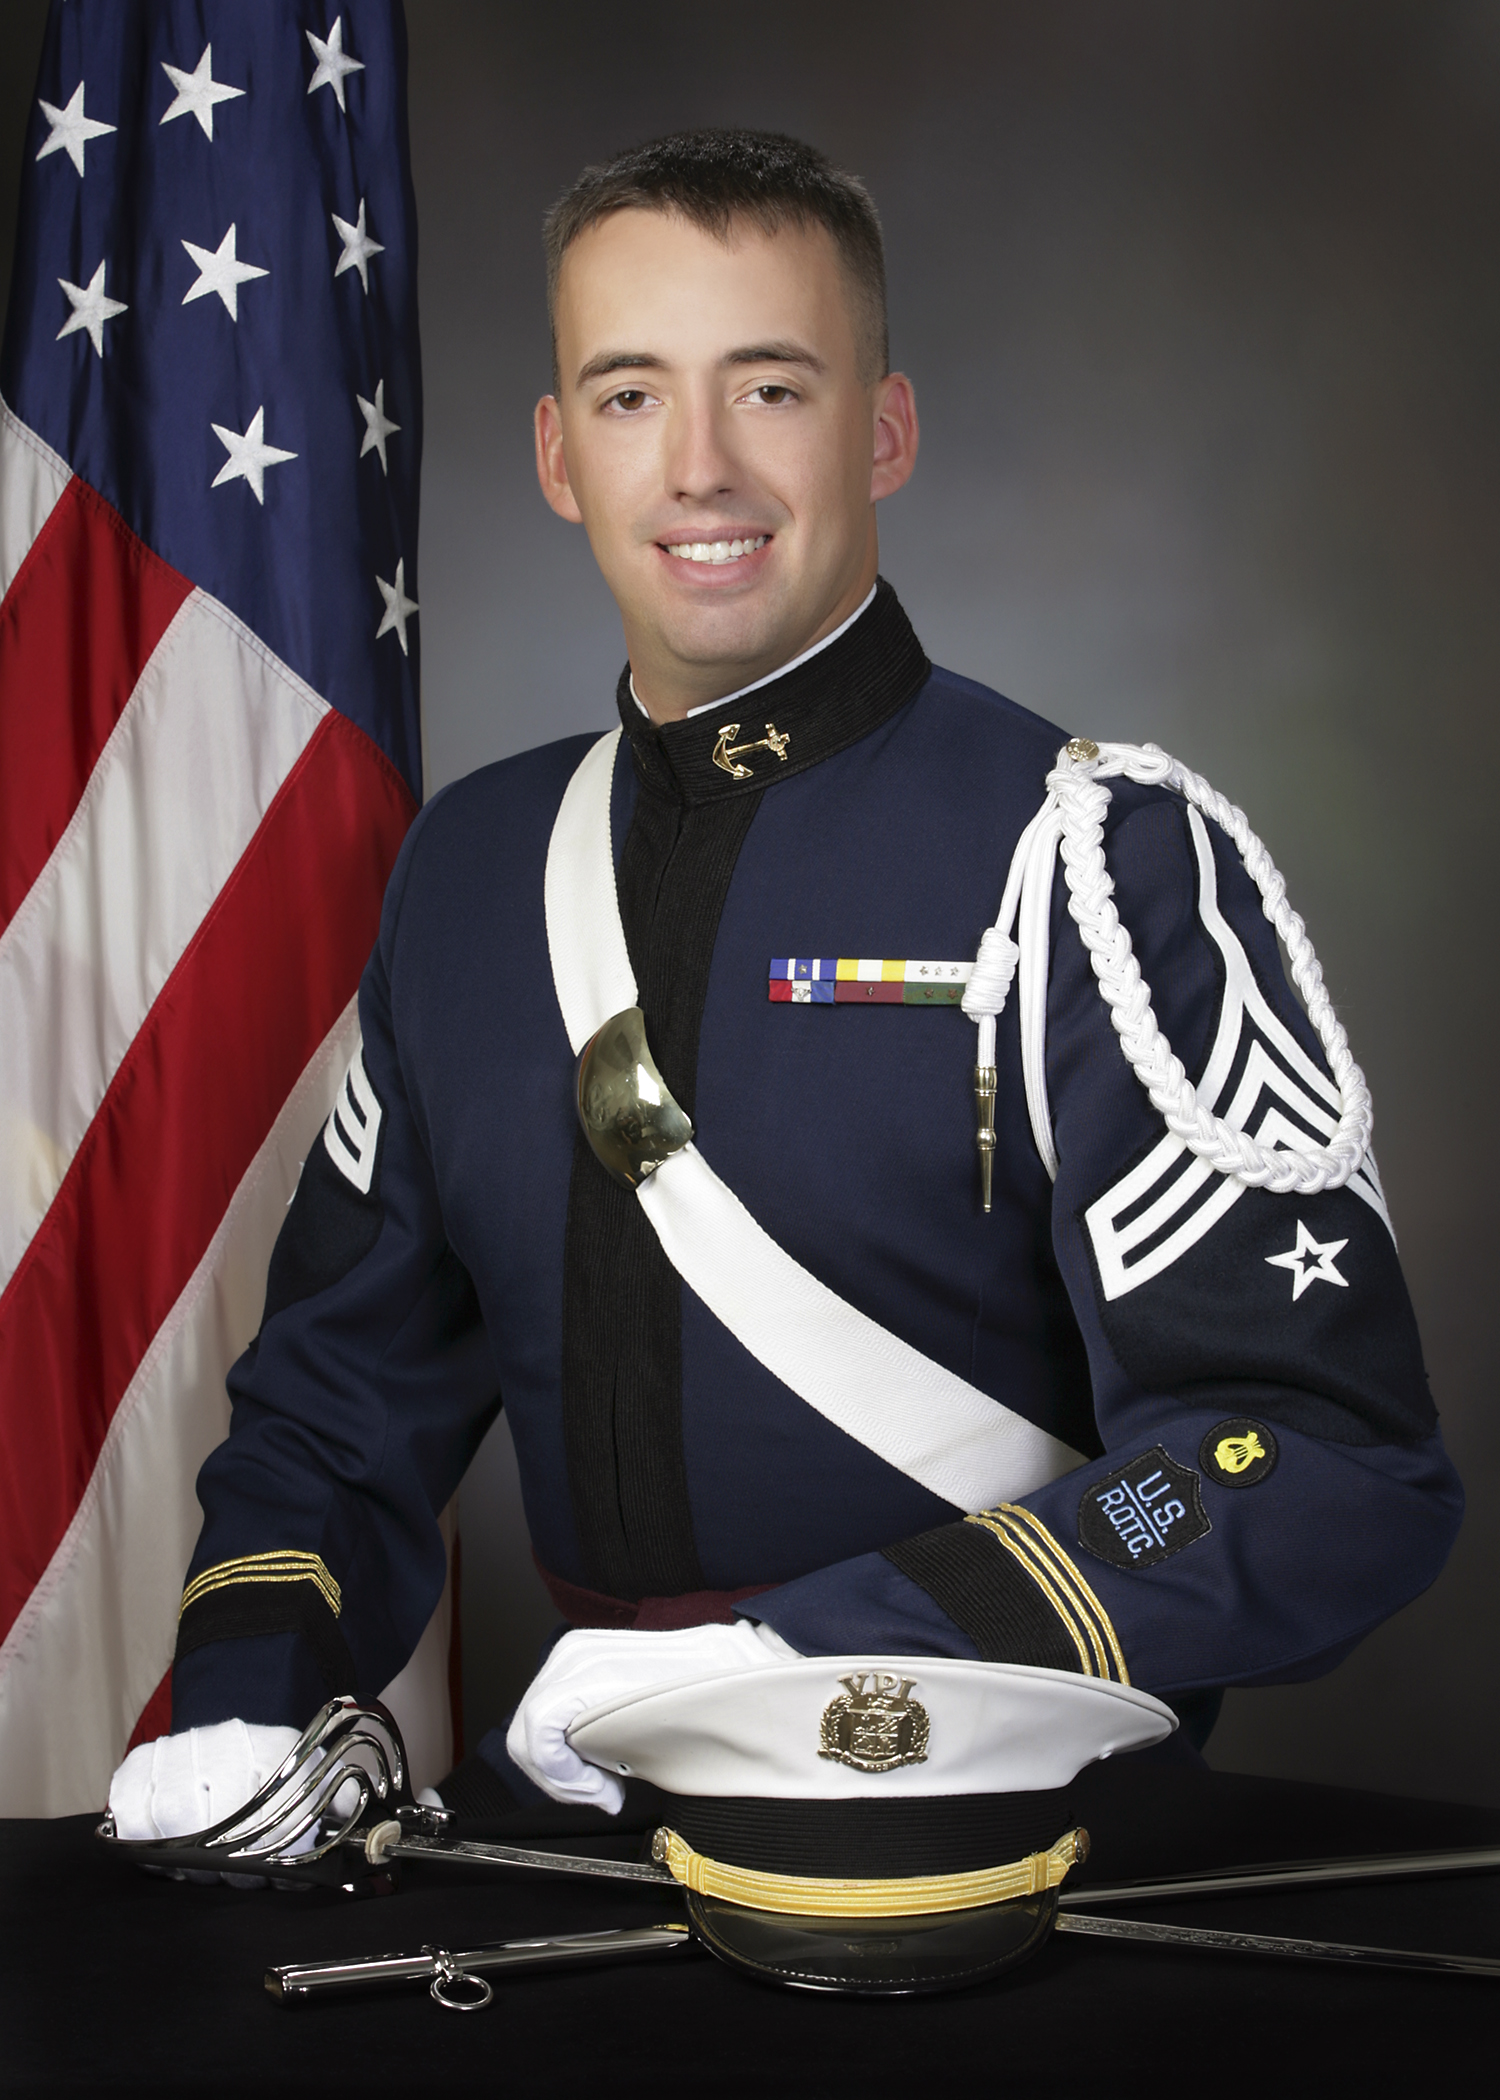 Lt. j.g. Zachary Eckhart, U.S. Navy, Virginia Tech Corps of Cadets Class of 2007 who was killed in a flight training accident in April 2010